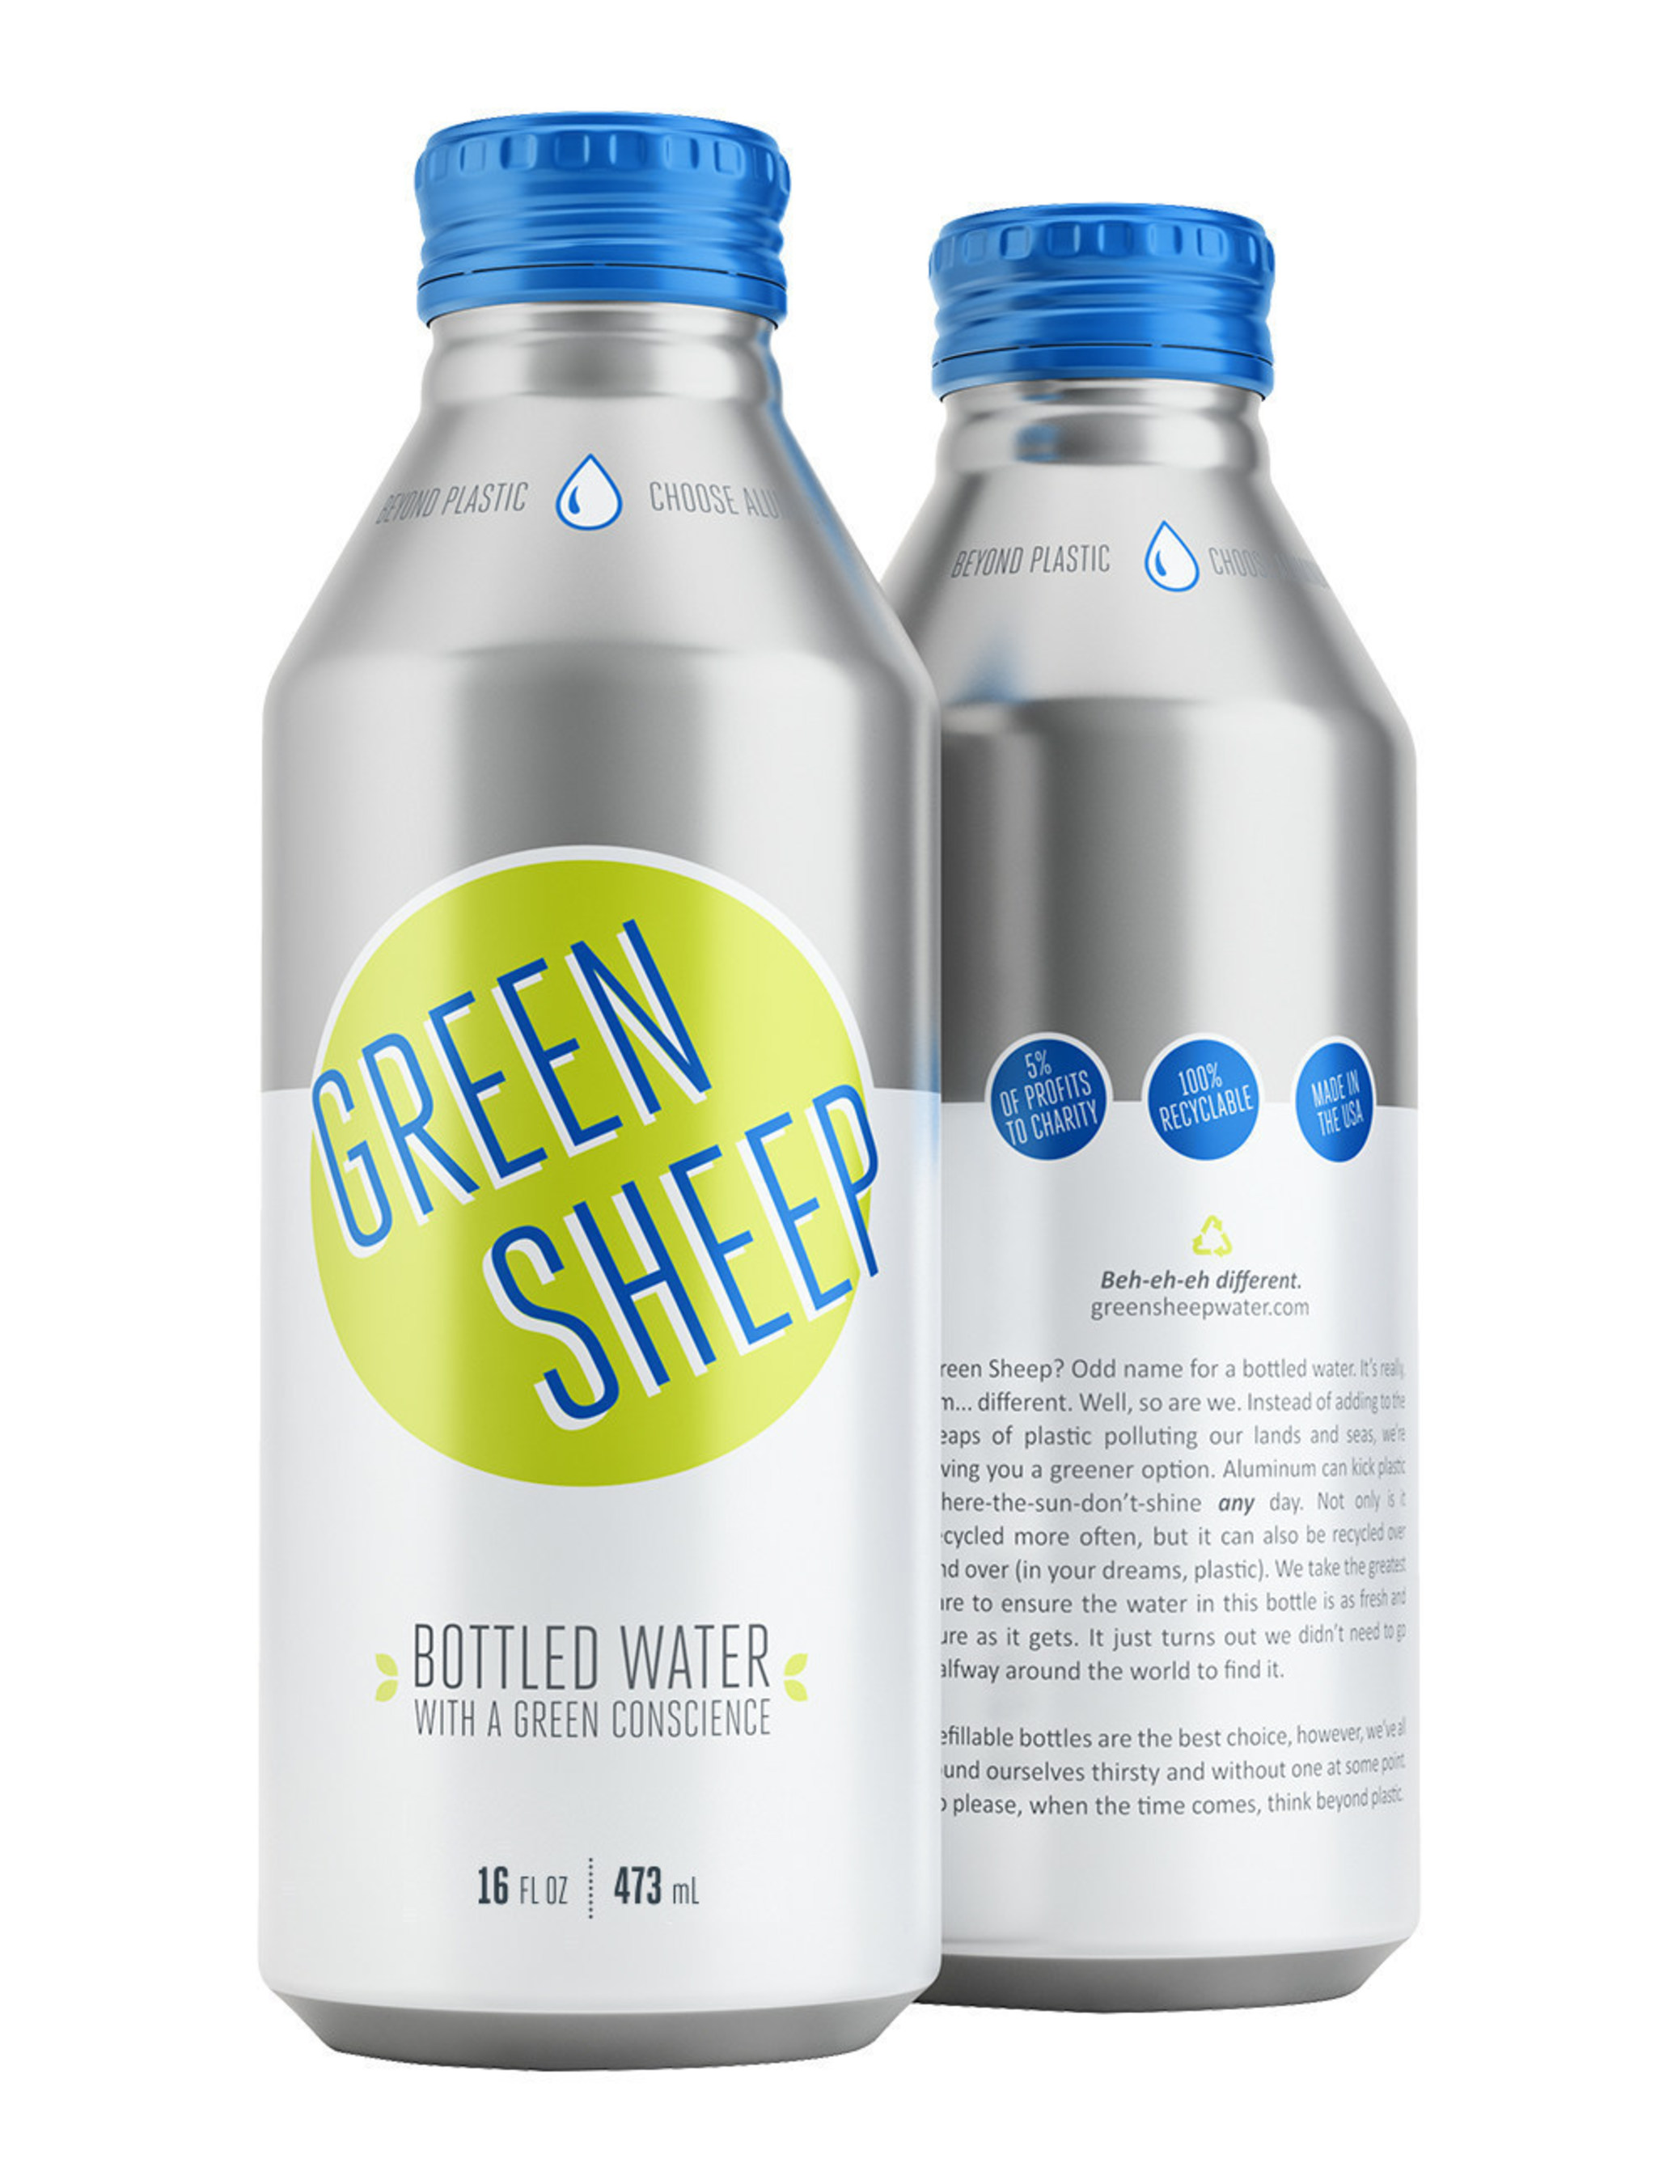 """Green Sheep Water - """"the bottled water with a green conscience"""" - is launching in infinitely recyclable, 16-ounce aluminum bottles made by Ball Corporation, instead of the usual (and less frequently recycled) plastic, glass or carton packaging."""